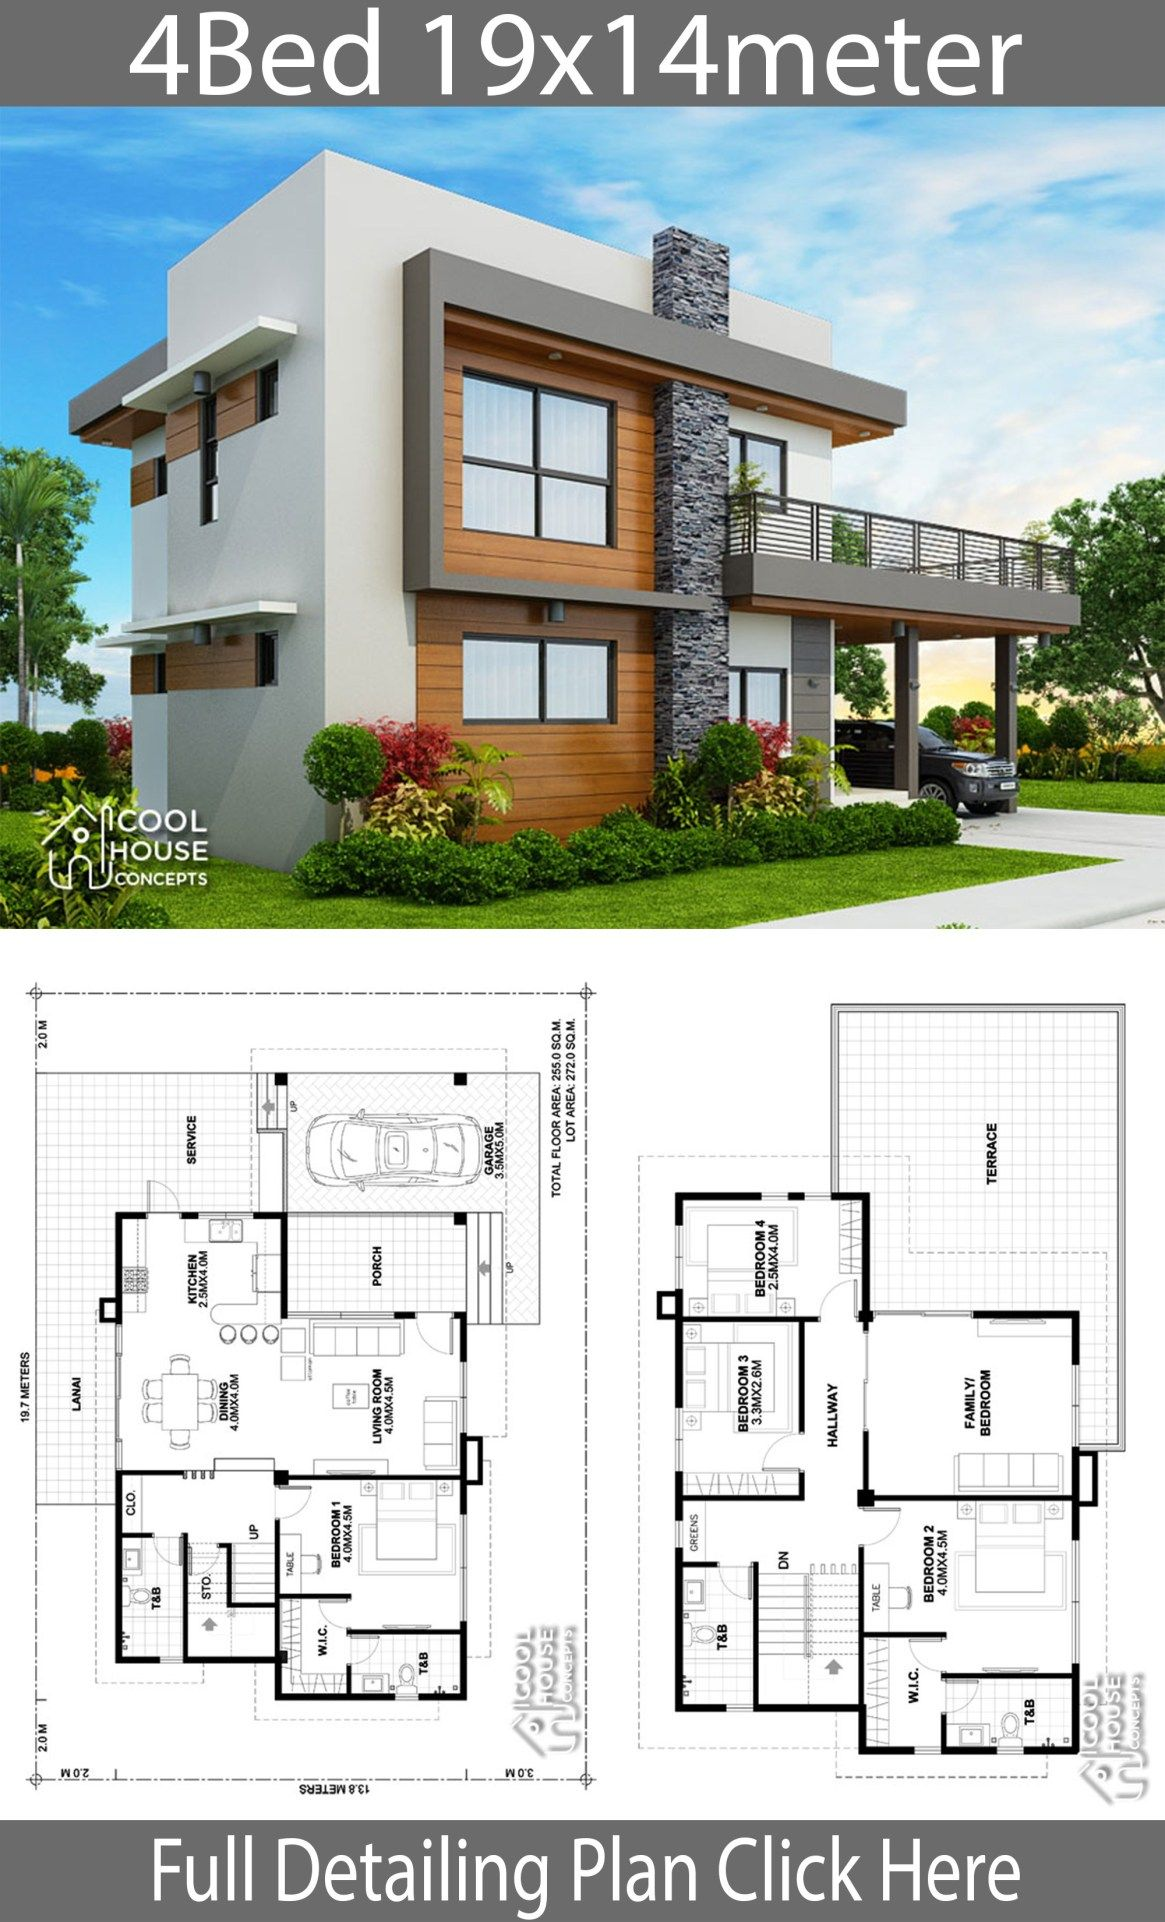 Home Design Plan 19x14m With 4 Bedrooms Home Design With Plansearch Duplex House Design 4 Bedroom House Designs Architecture House